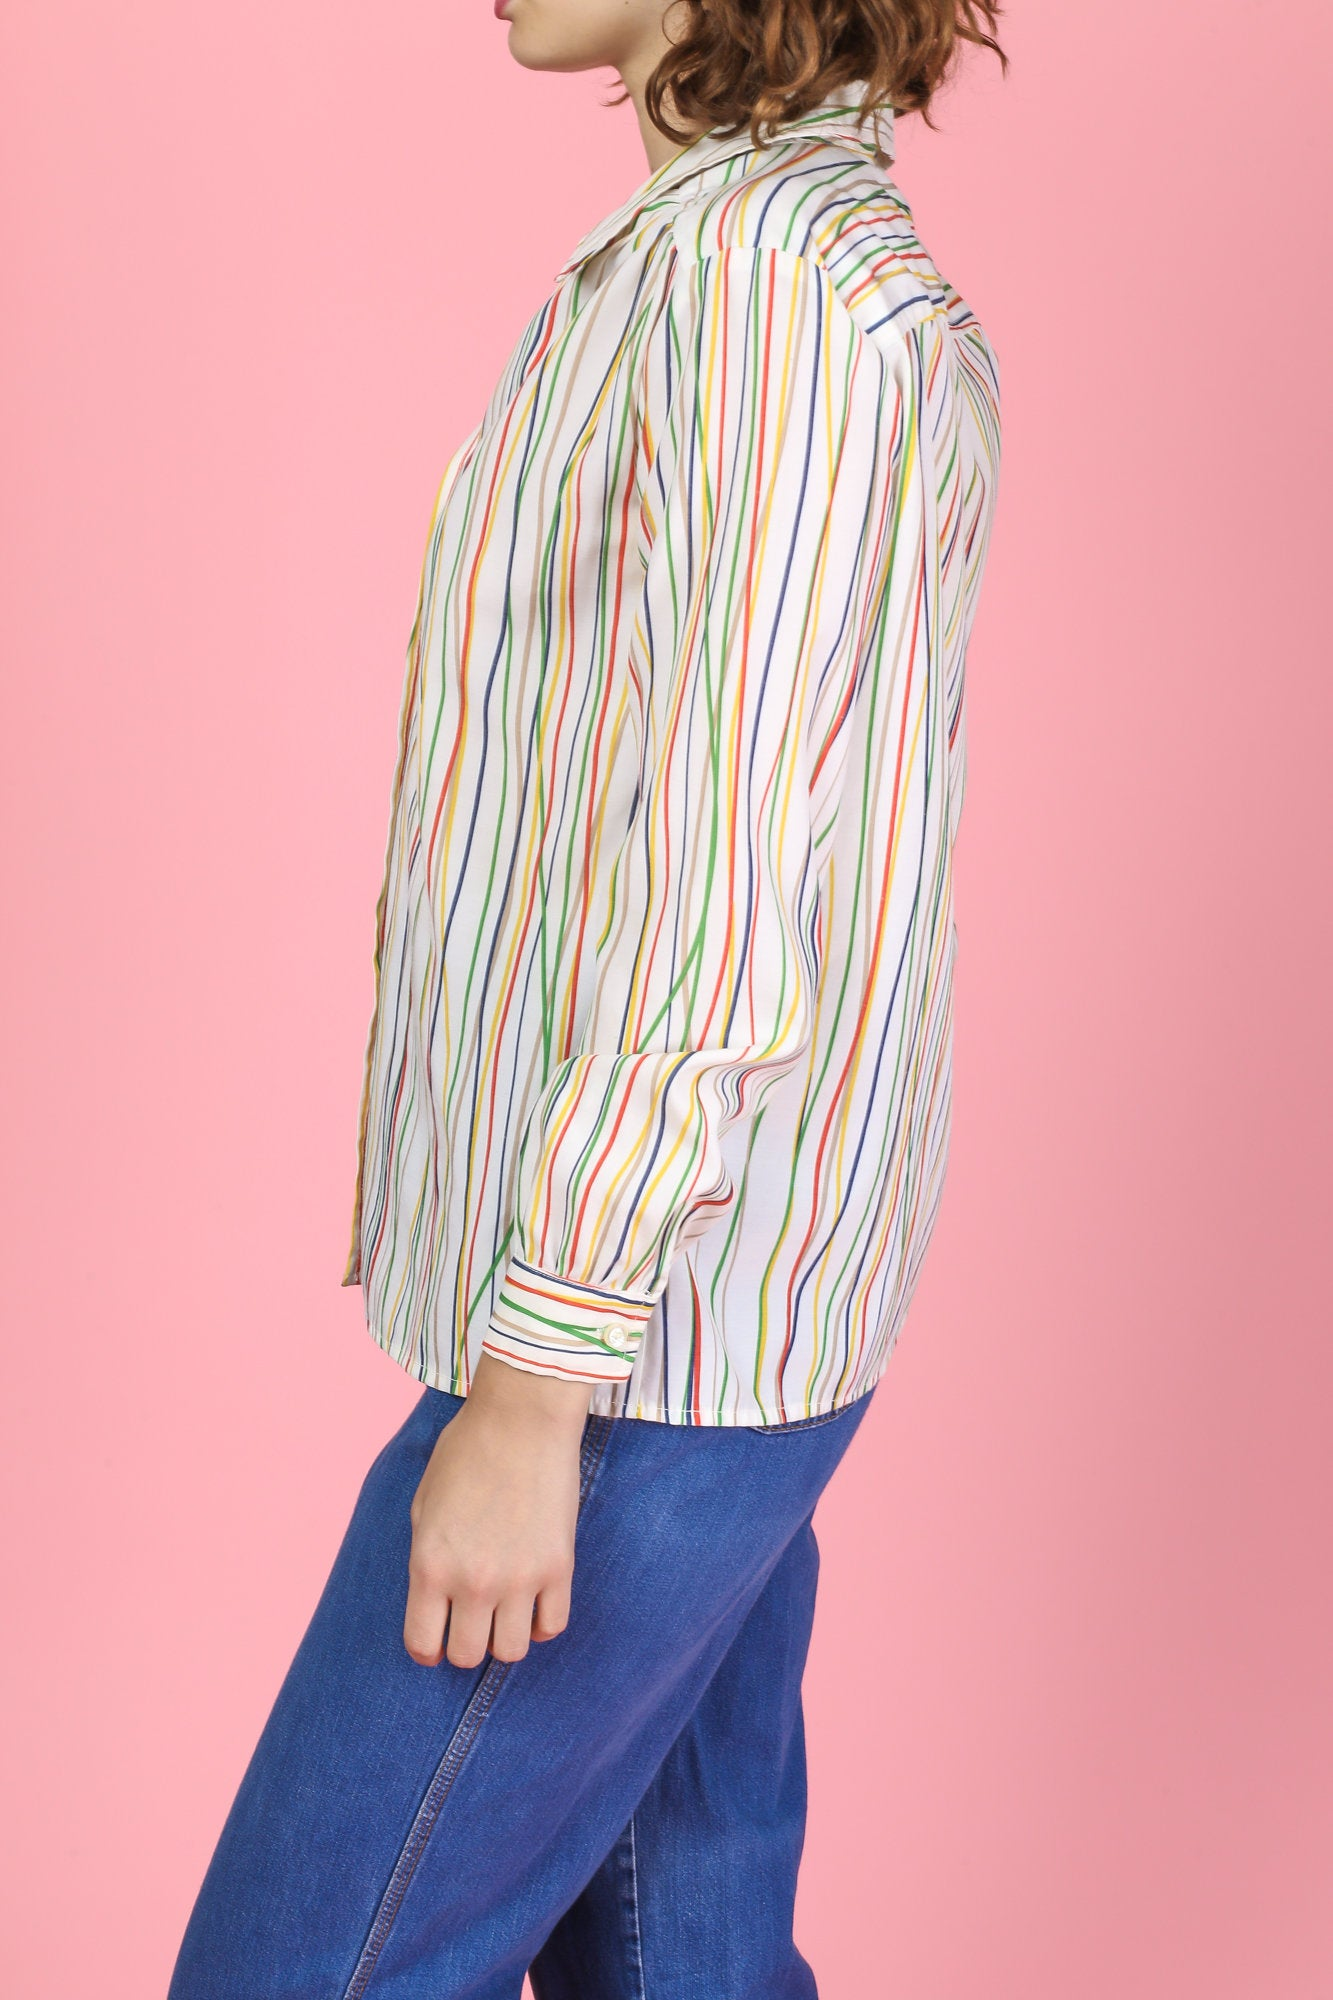 70s Colorful Striped Button Up Blouse - Large